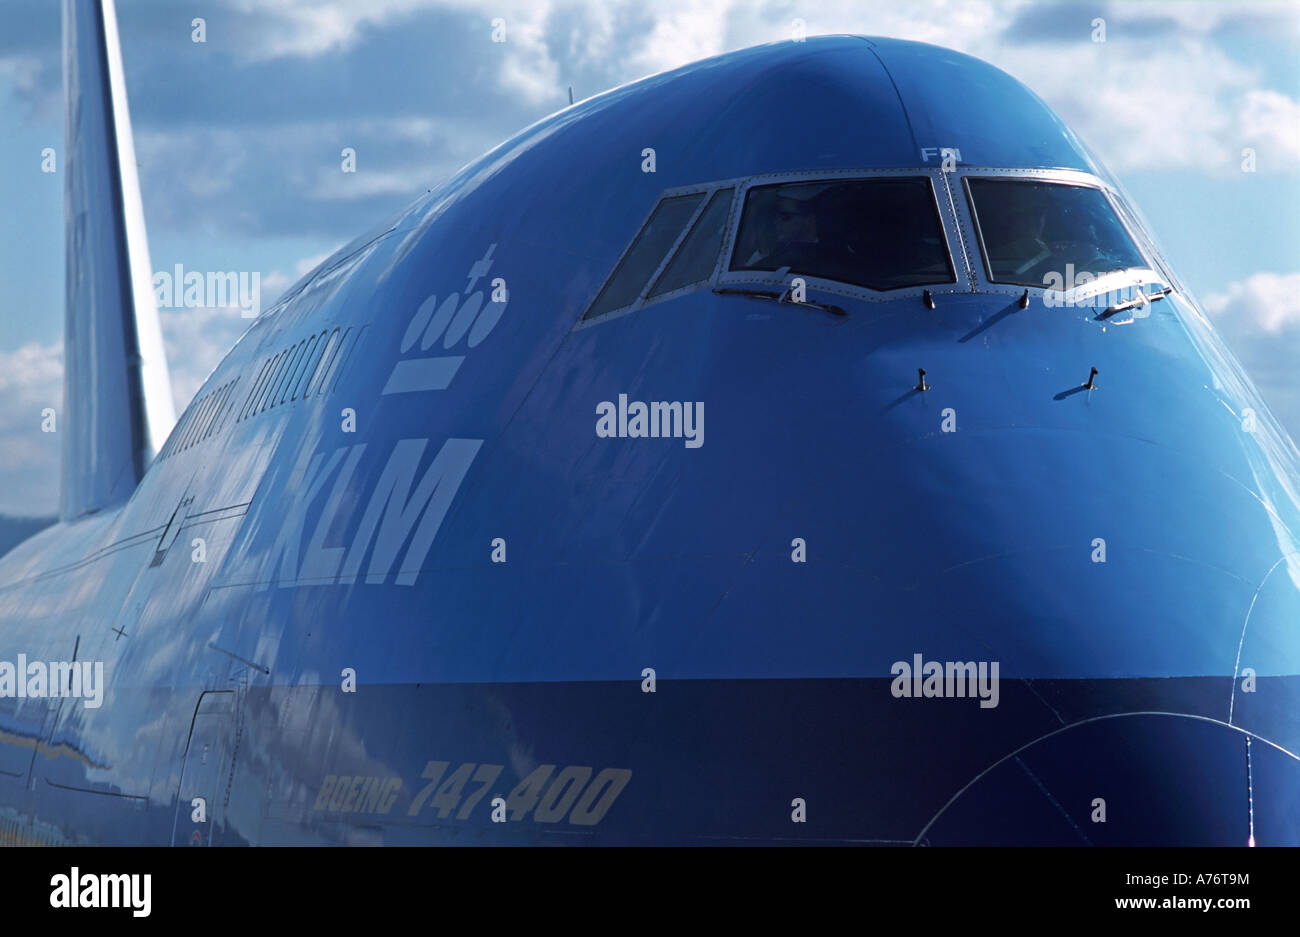 Boeing 747 400 cockpit viewed from the nose KLM livery on the side - Stock Image